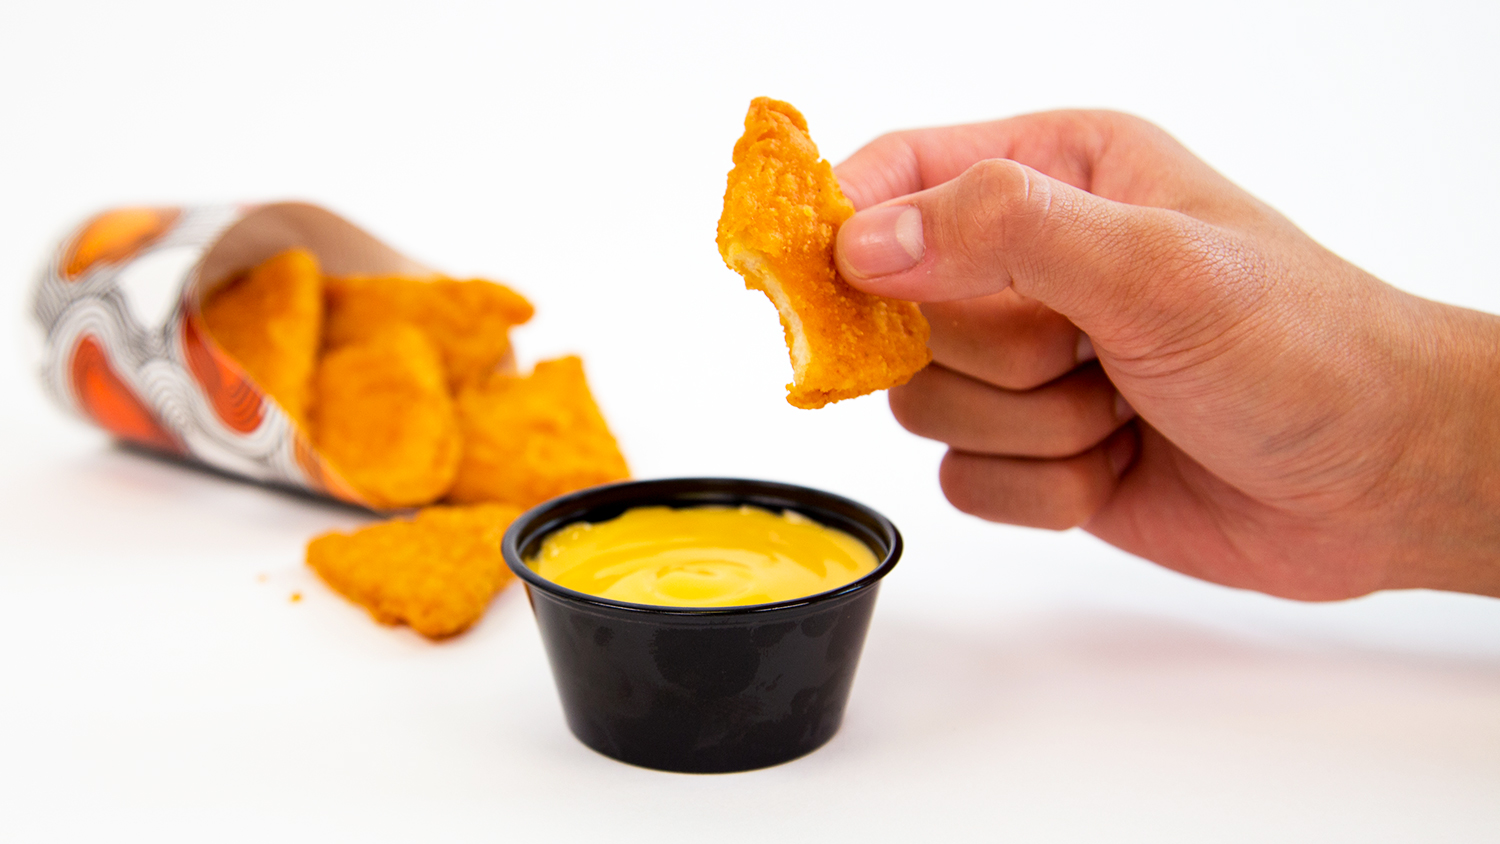 taco bell's naked chicken chips are the triangular mcnugget